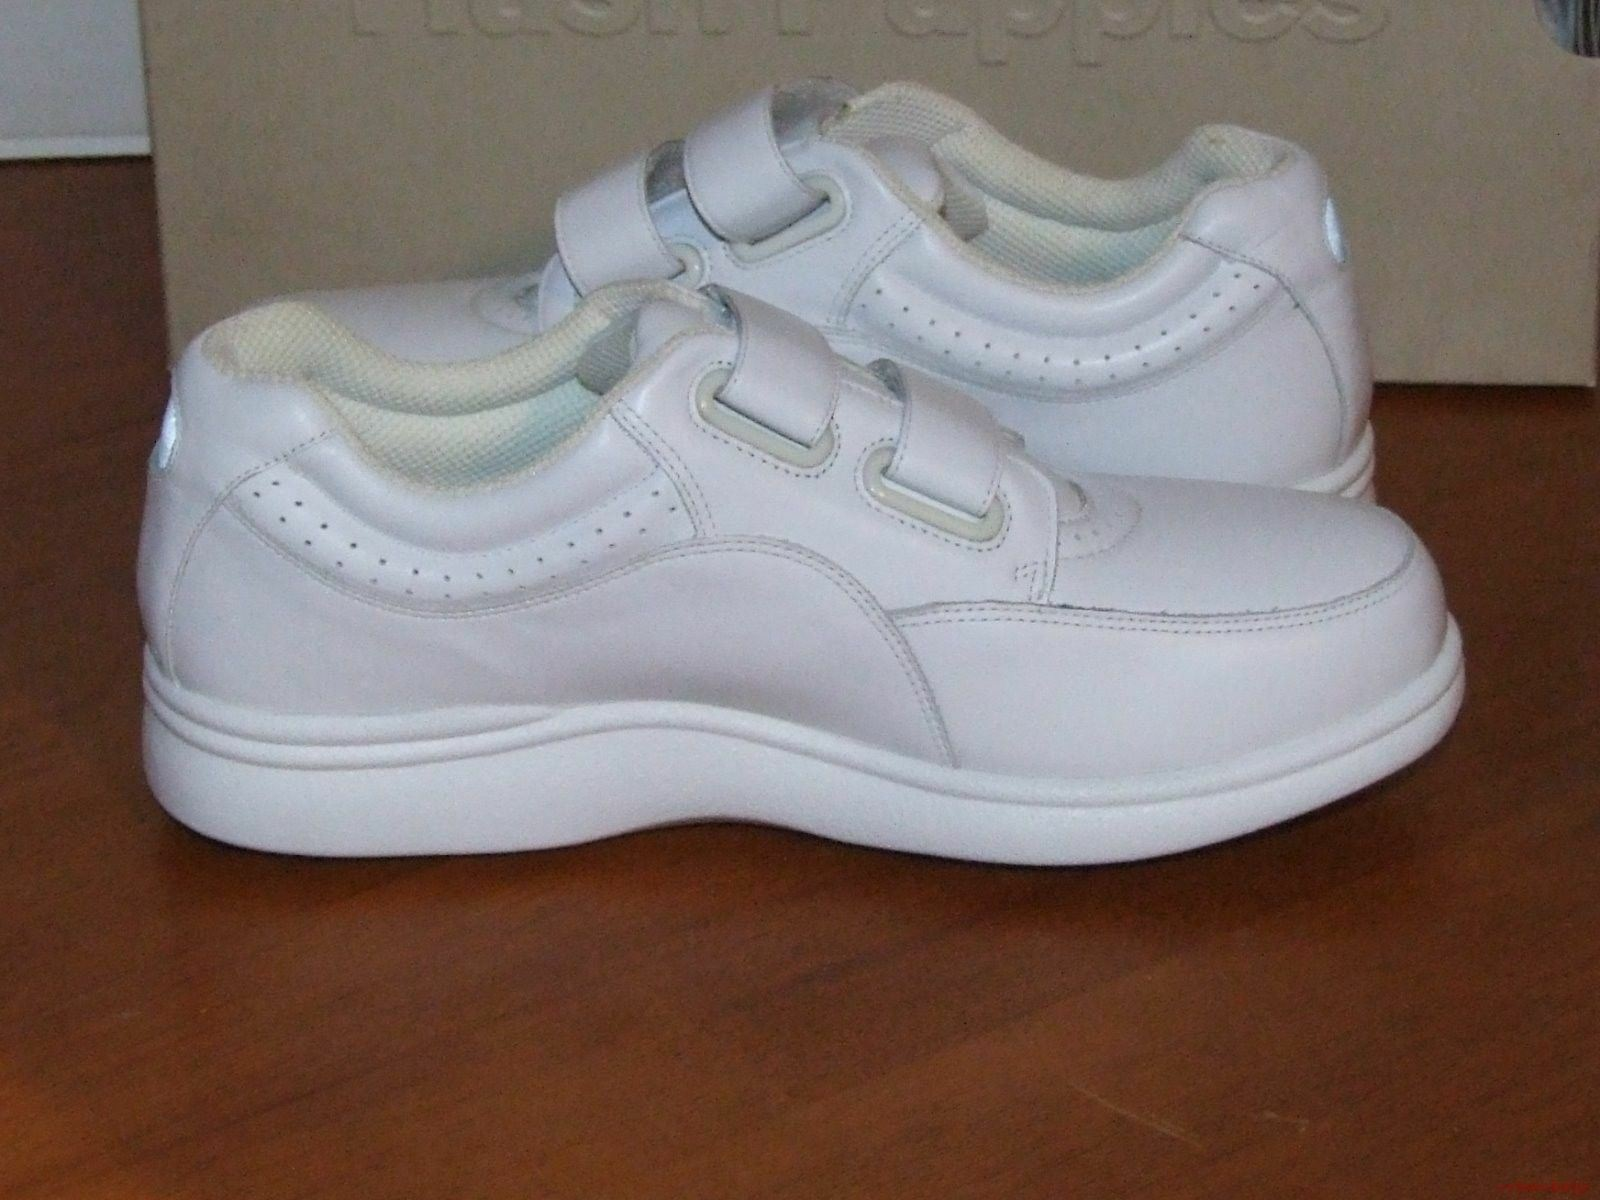 Hush Puppies Power Walker II II II Zapatillas De Cuero Blanco e8d65f